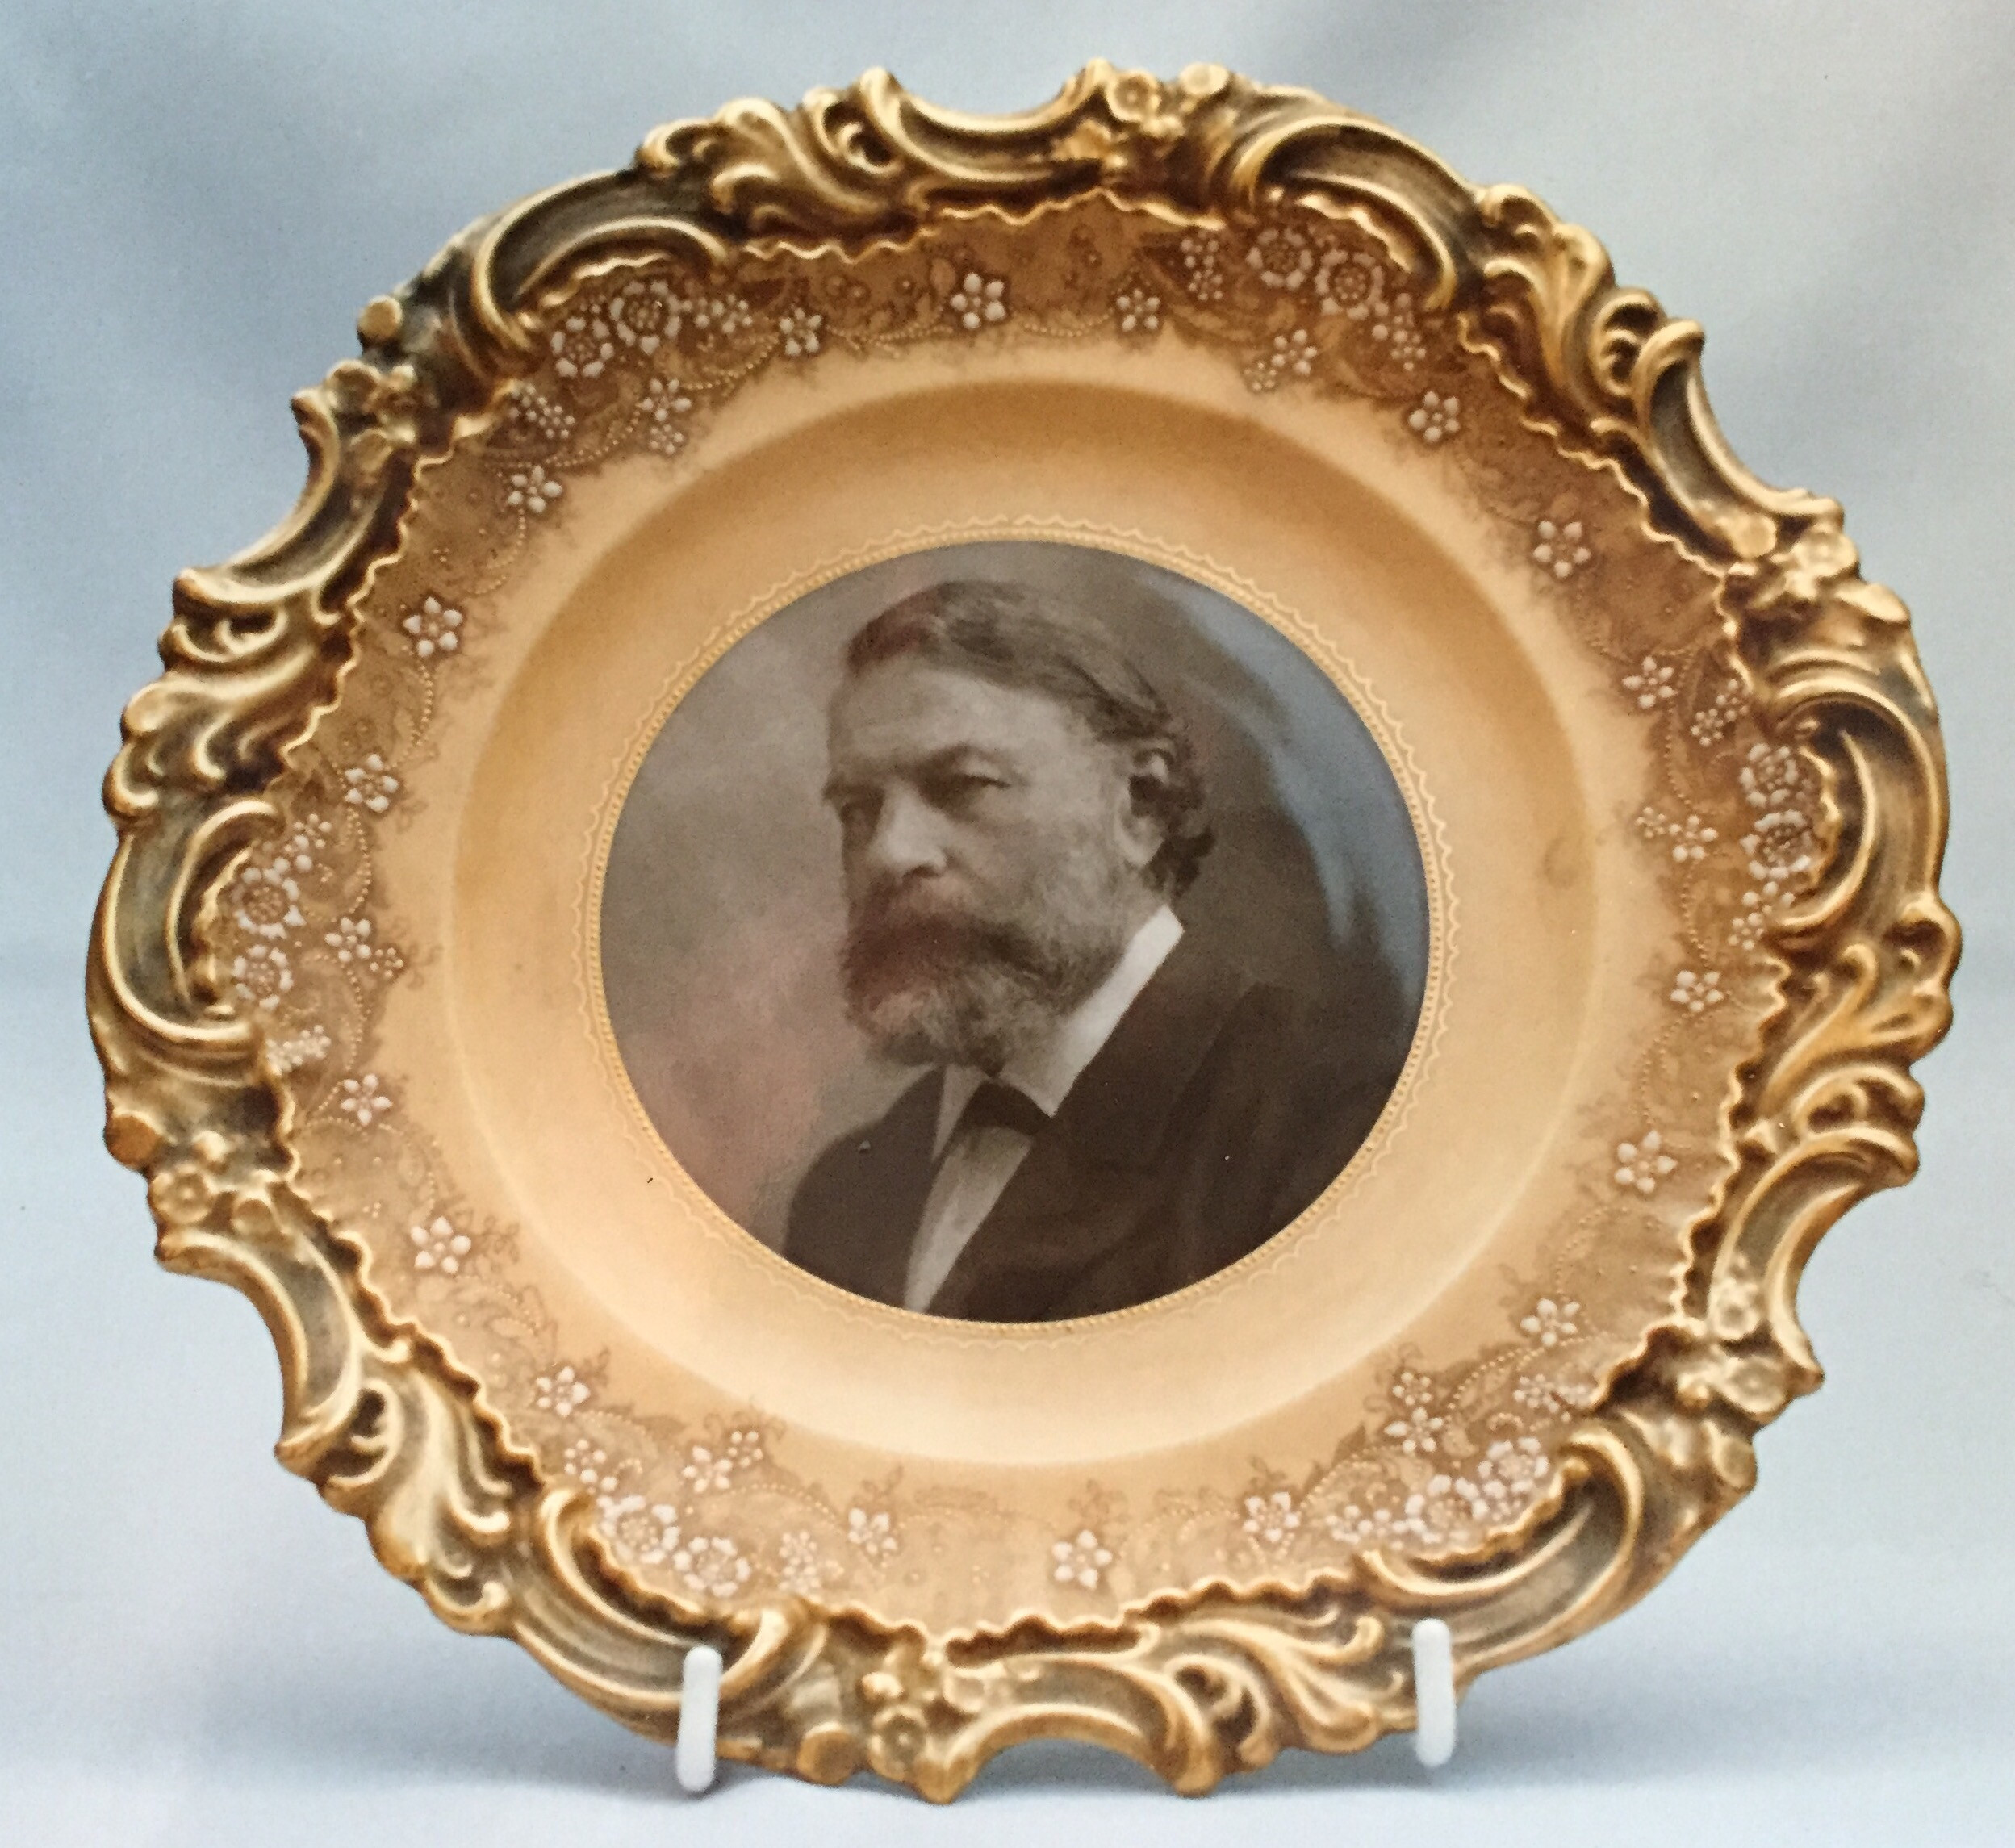 royal doulton art nouveau vases of art nouveau doultoncollectorsclub in early plate with a photographic image of joseph joachim a popular violinist